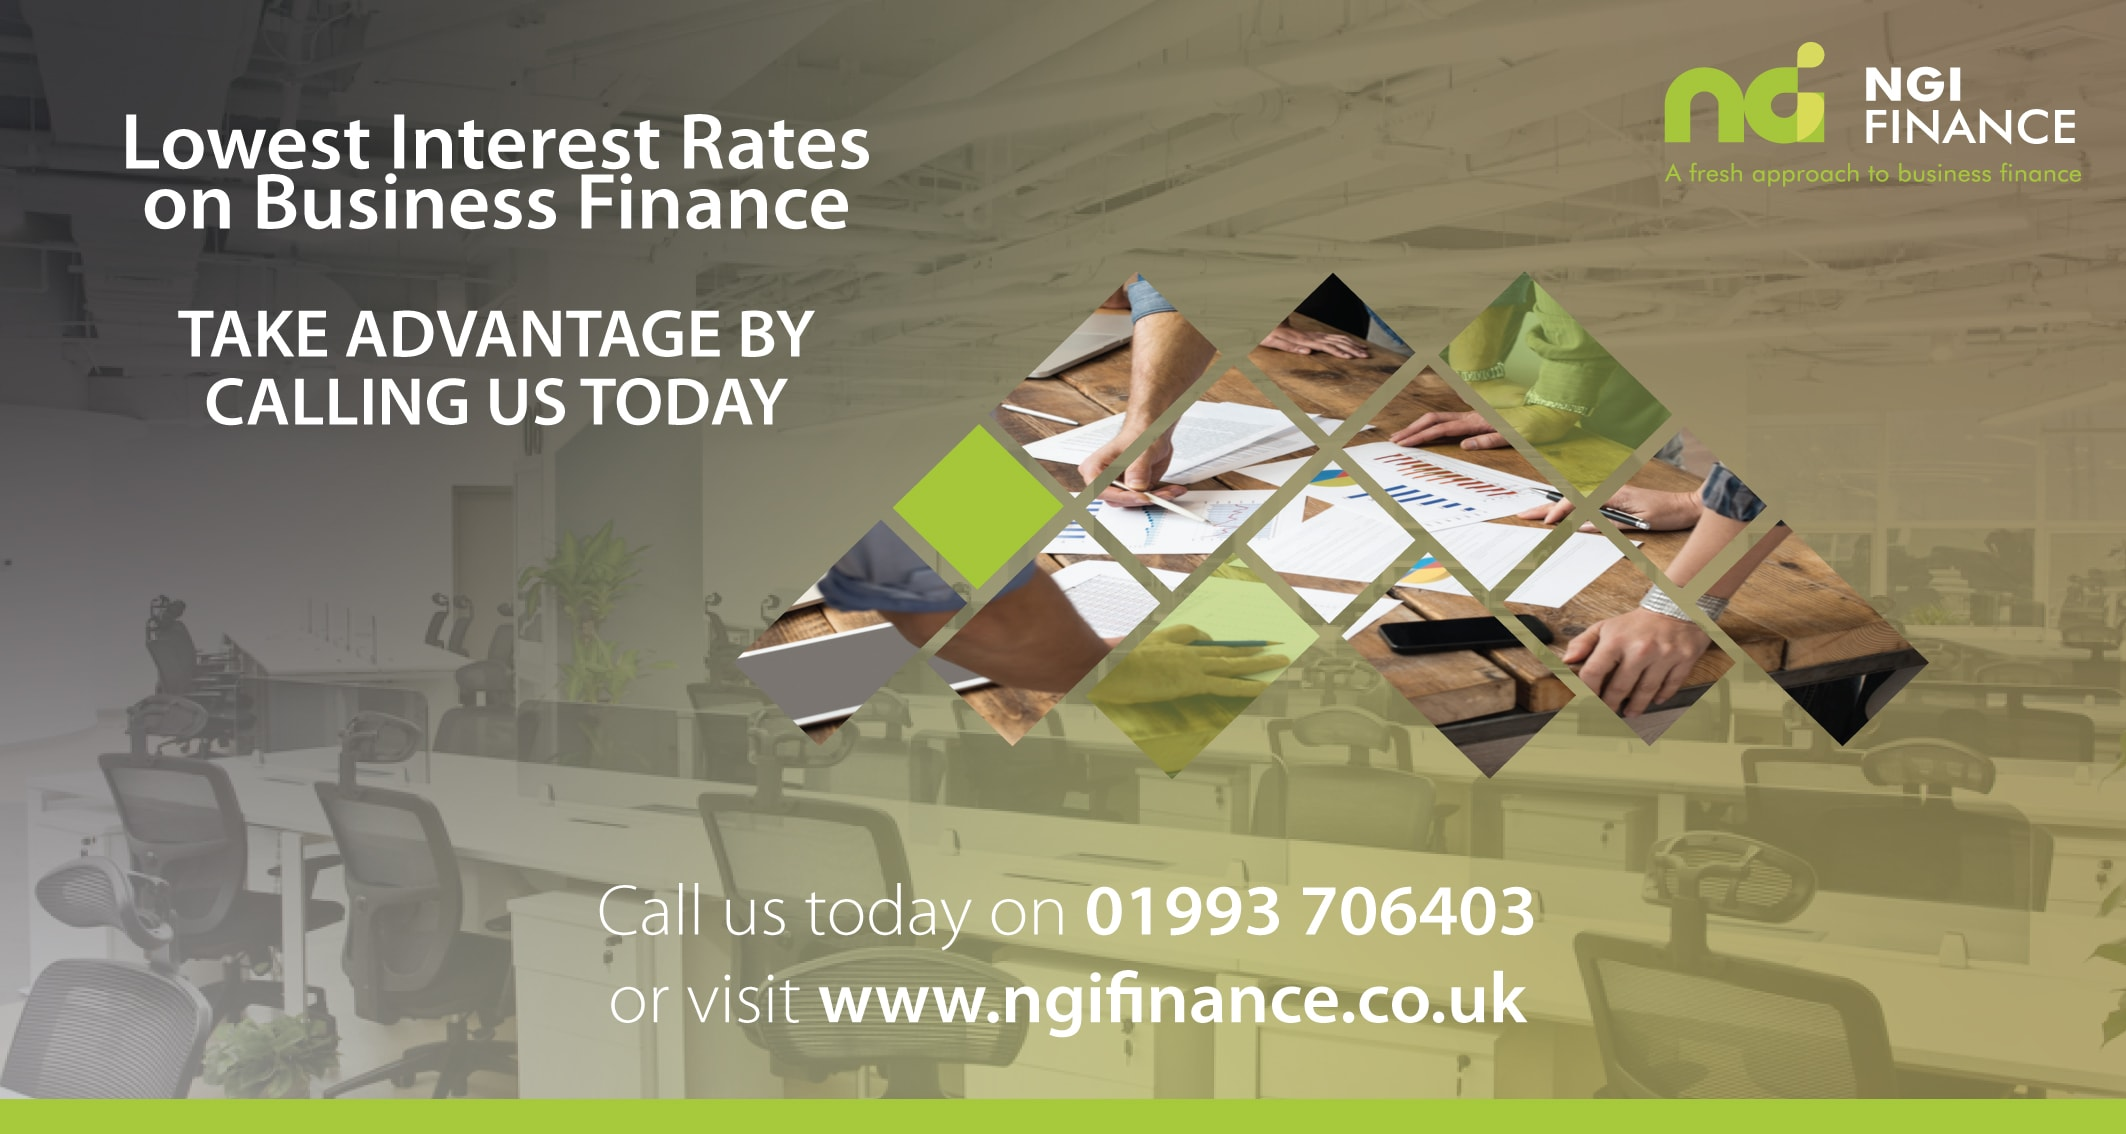 Low Interest Rates | Business Finance | Best Rates for Business Finance Oxfordshire